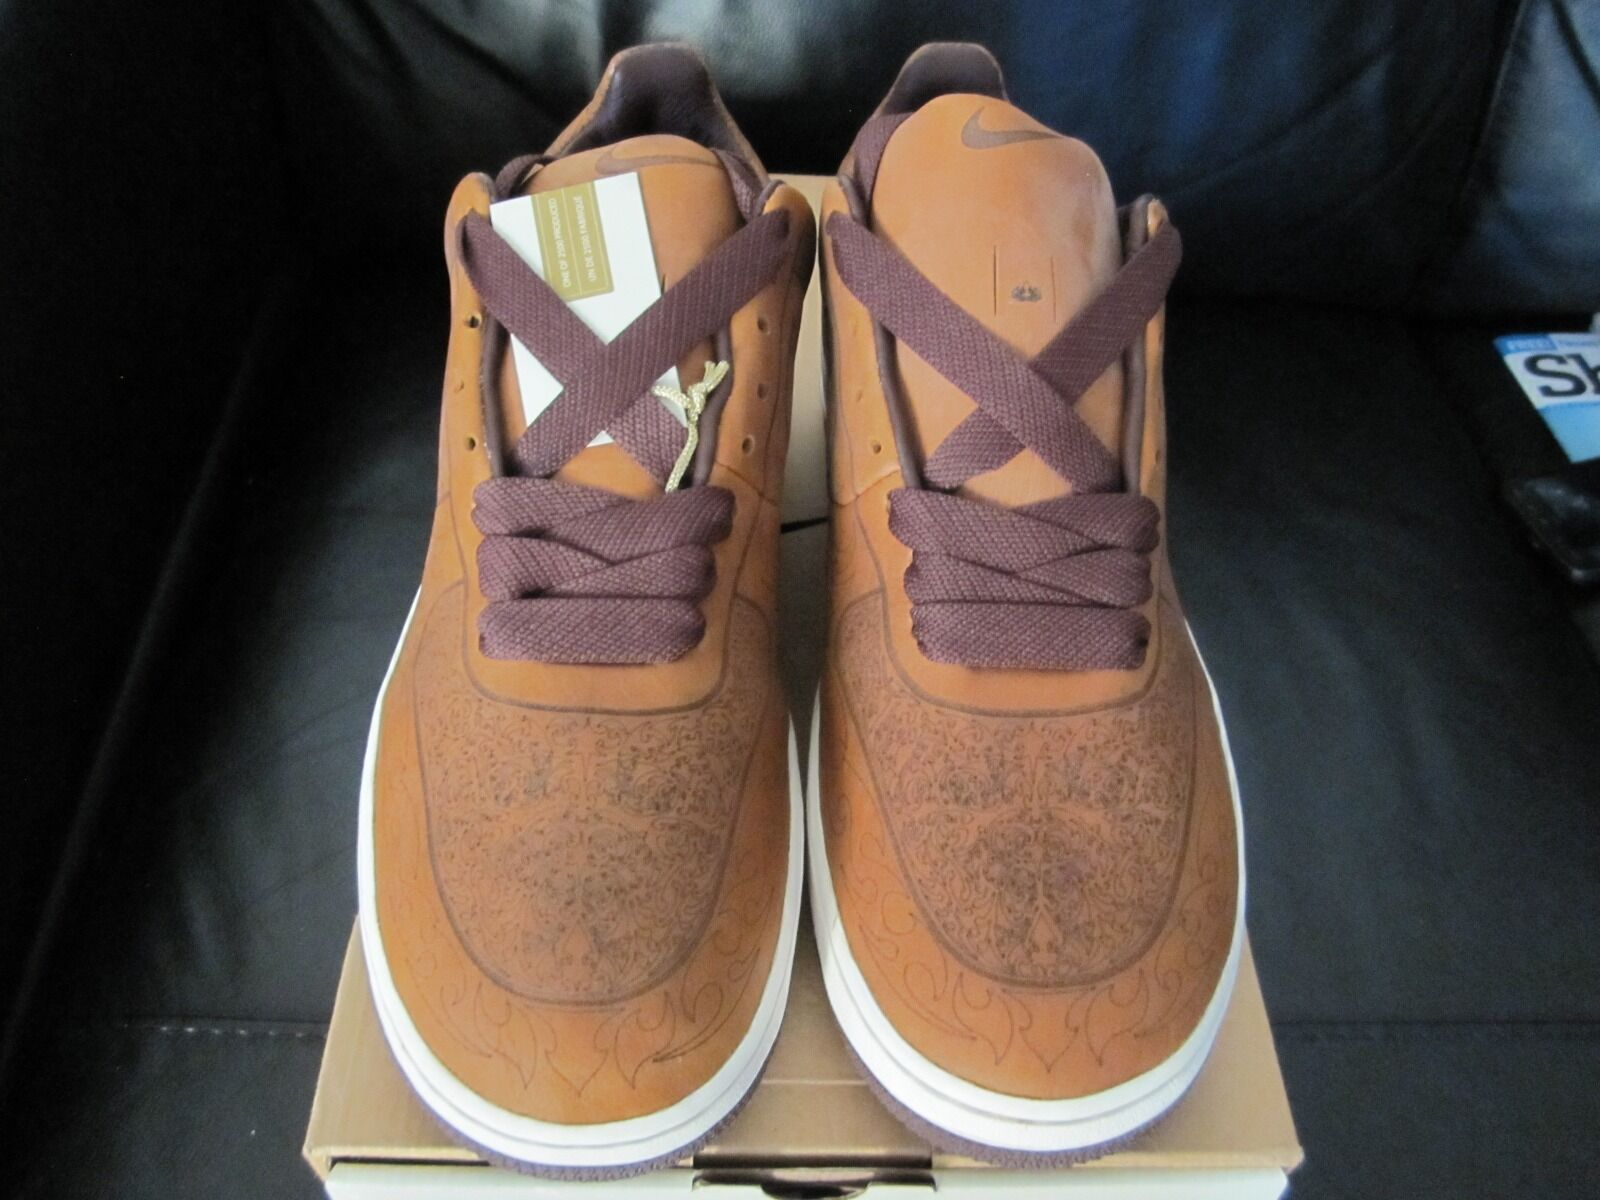 Nike Air Force 1 Smith Laser Pack 2003 Limited Edition by Mark Smith 1 Taille 8 K 9 38b840